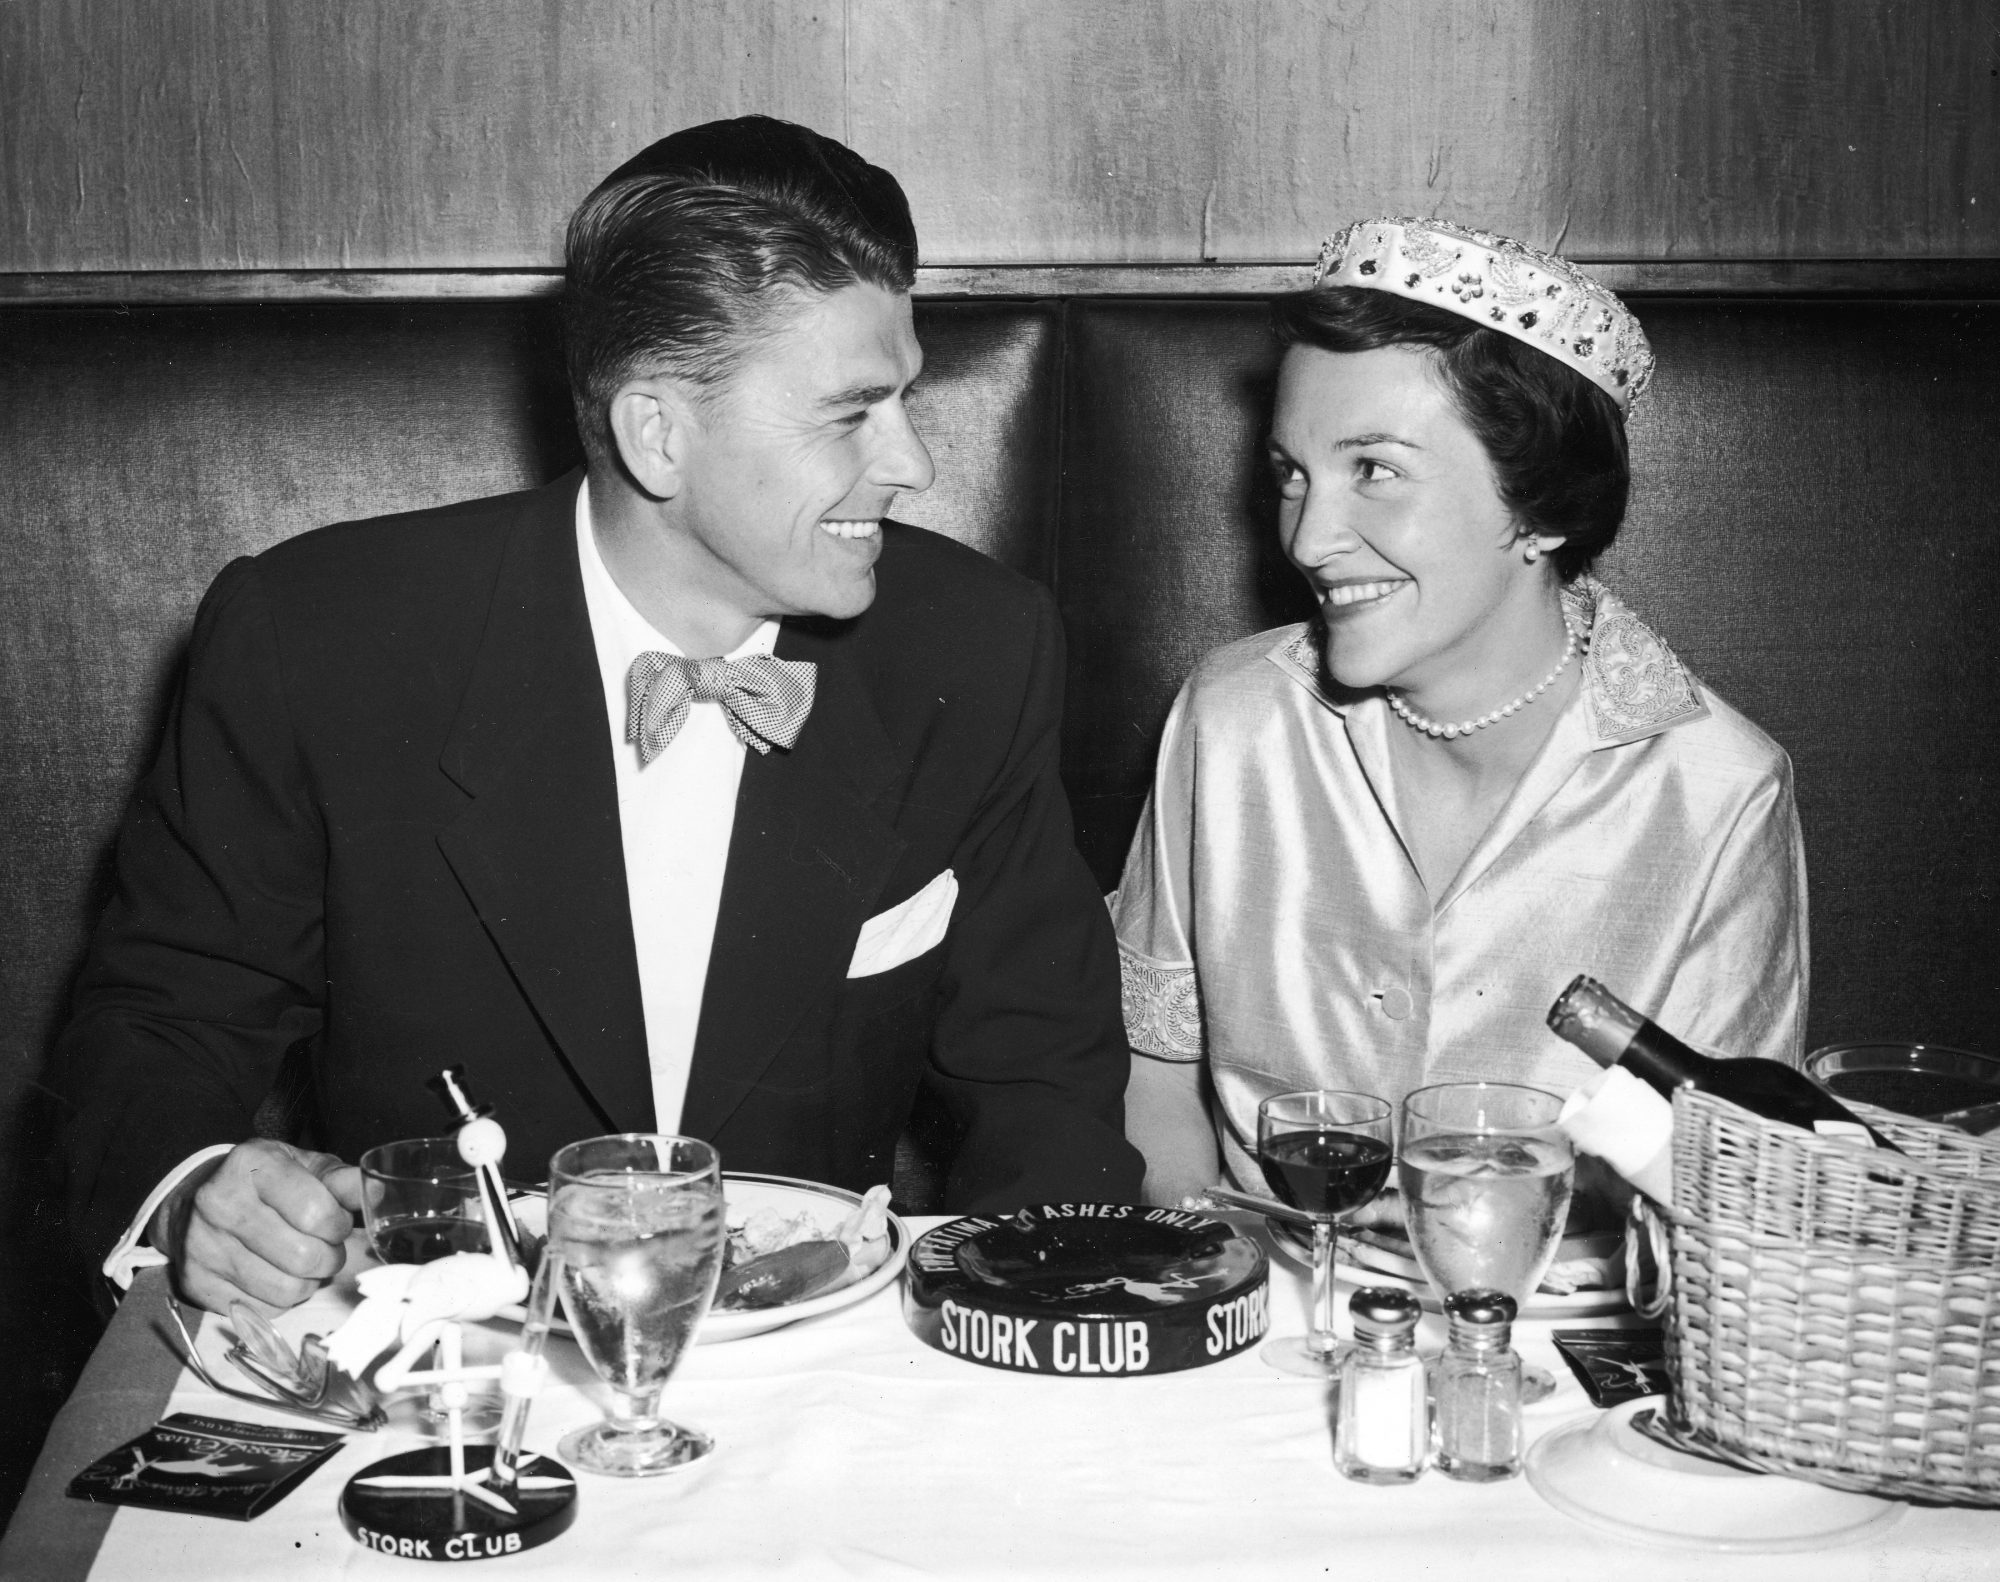 Ronald and Nancy Reagan Honeymoon Dinner